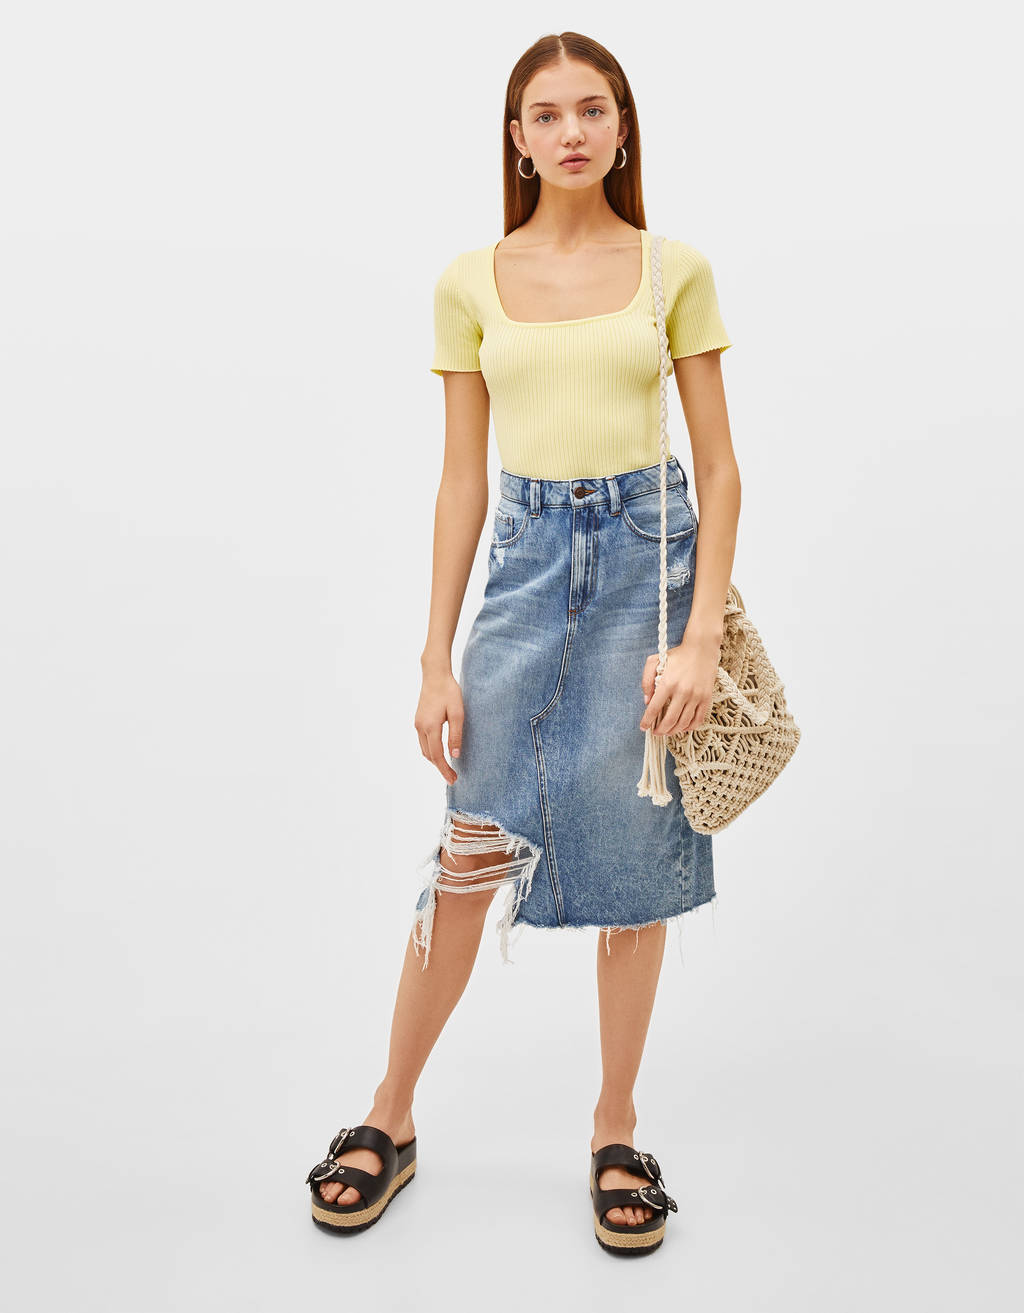 Faldilla denim midi